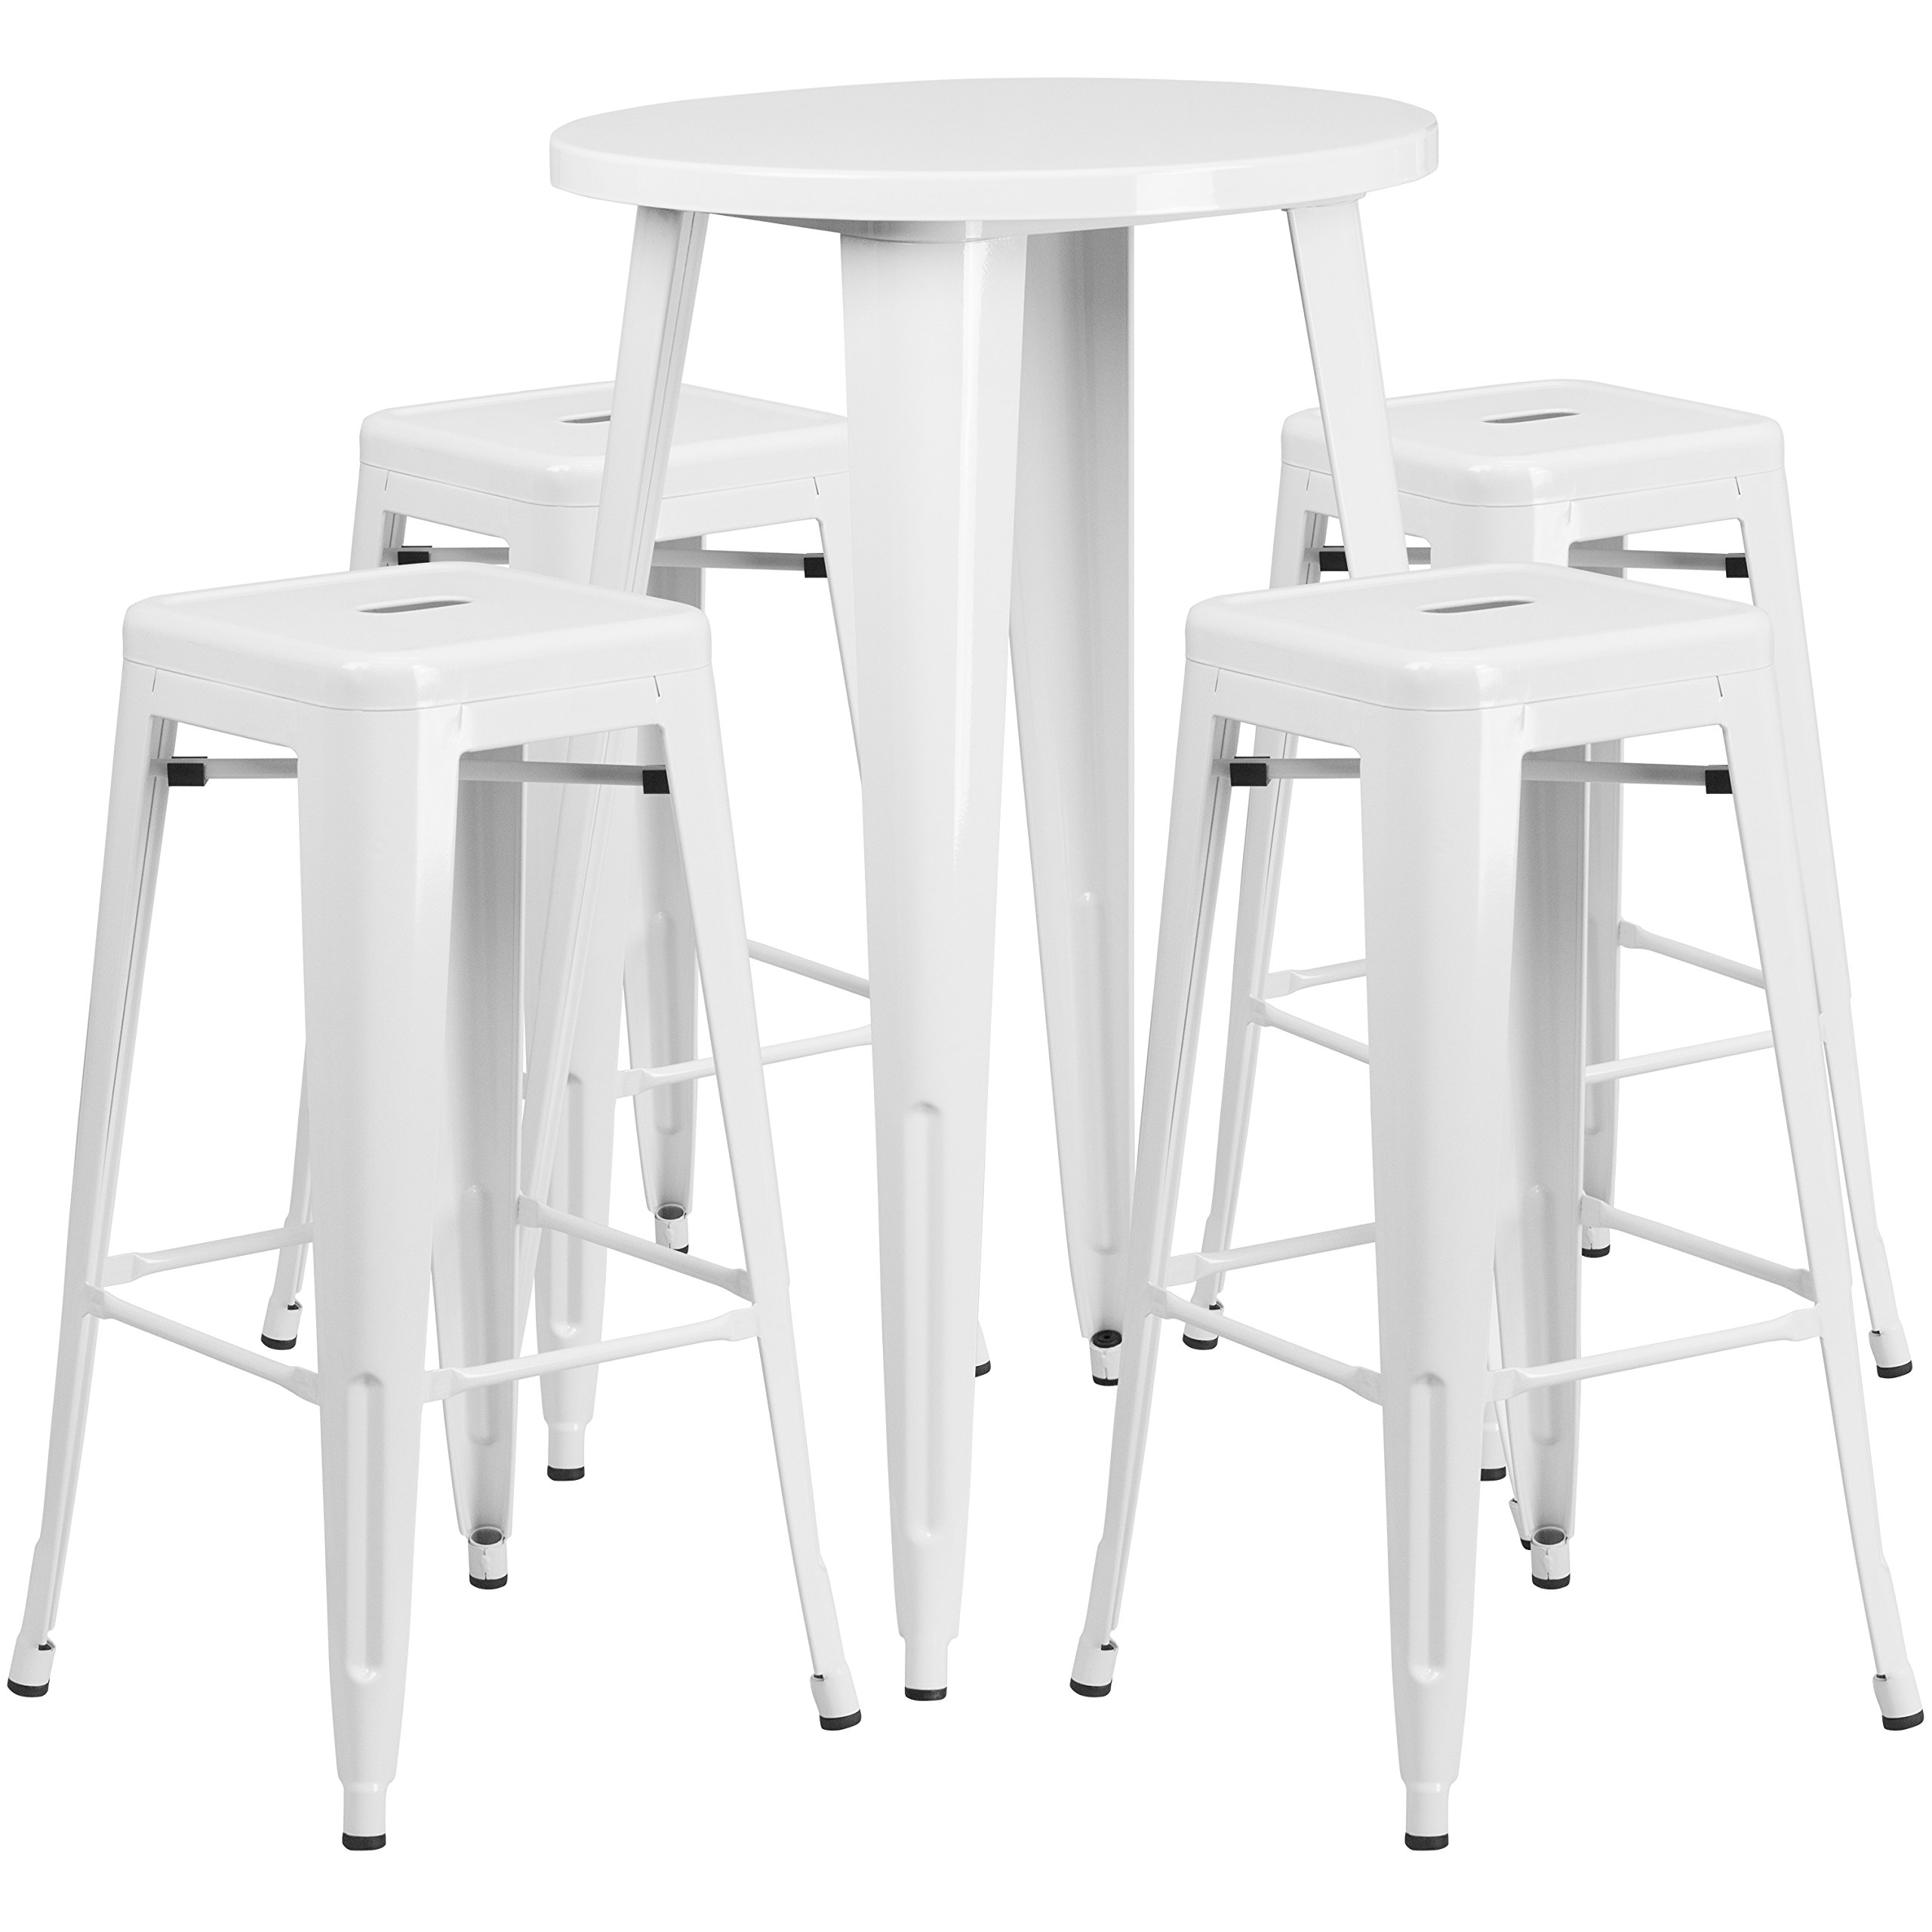 Flash Furniture 24'' Round White Metal Indoor-Outdoor Bar Table Set with 4 Square Seat Backless Stools by Flash Furniture